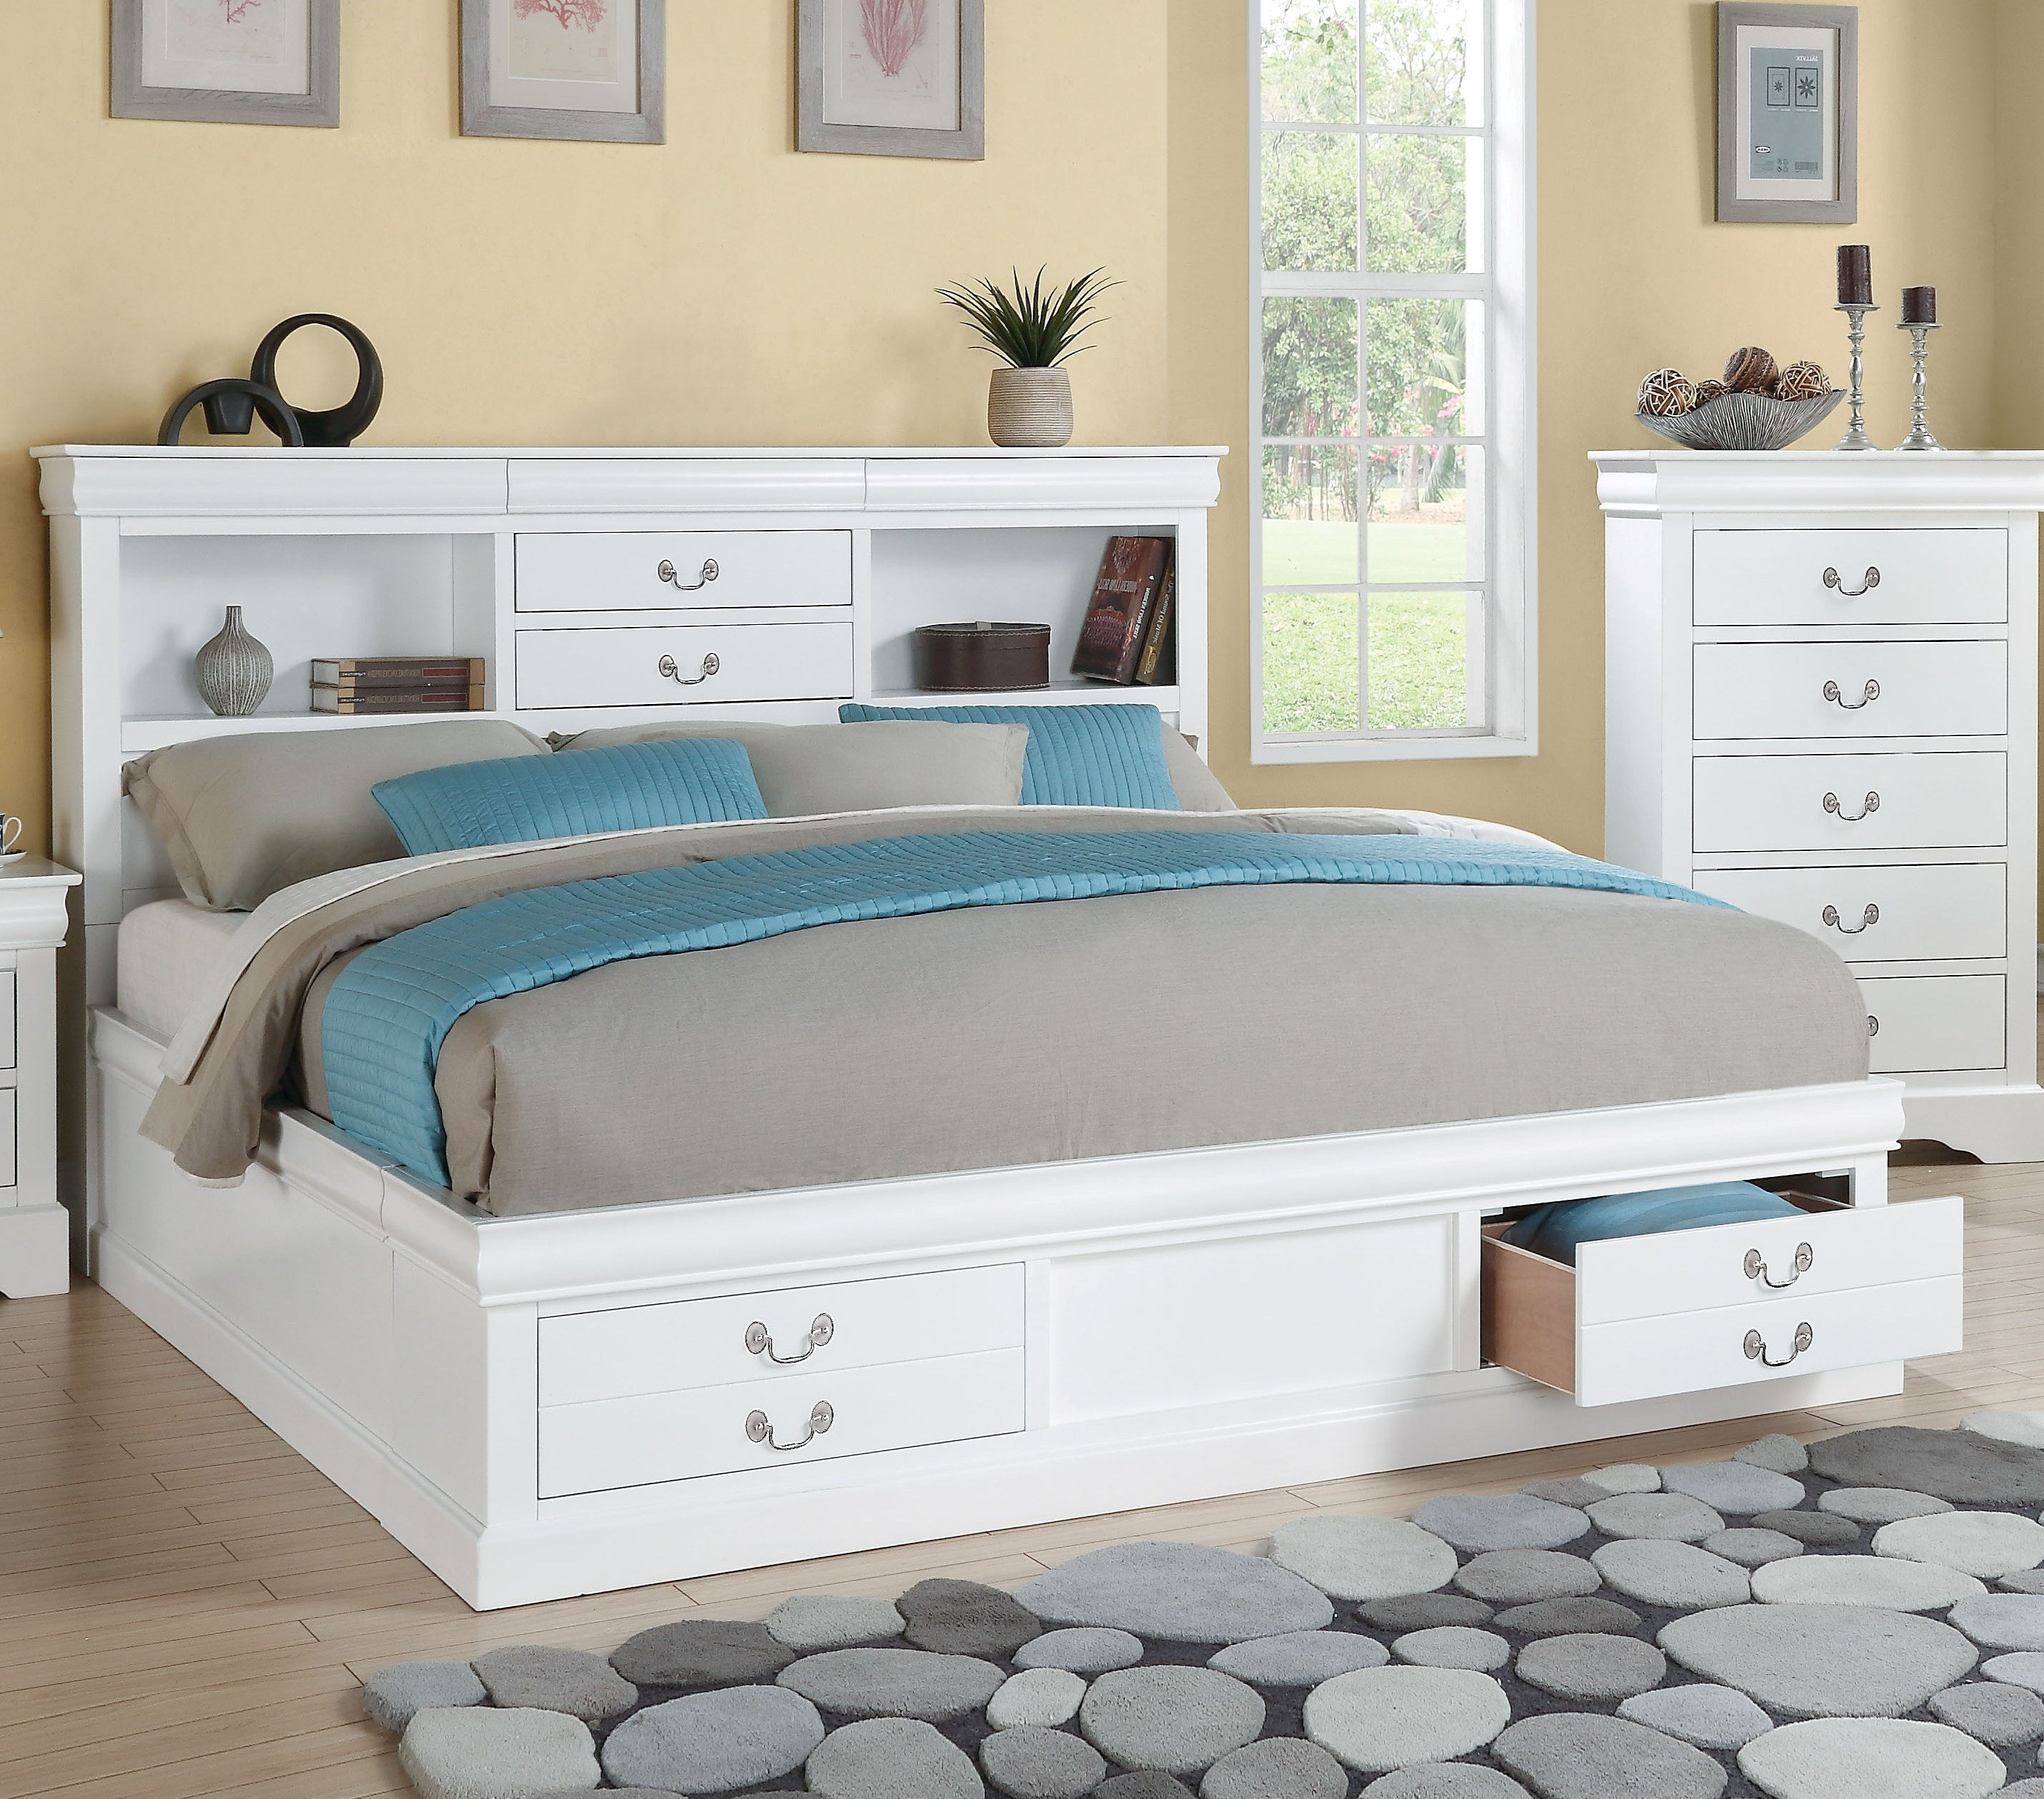 Louis Philippe Bedroom Set Elegant Acme Furniture Louis Philippe Iii White King Storage Bed